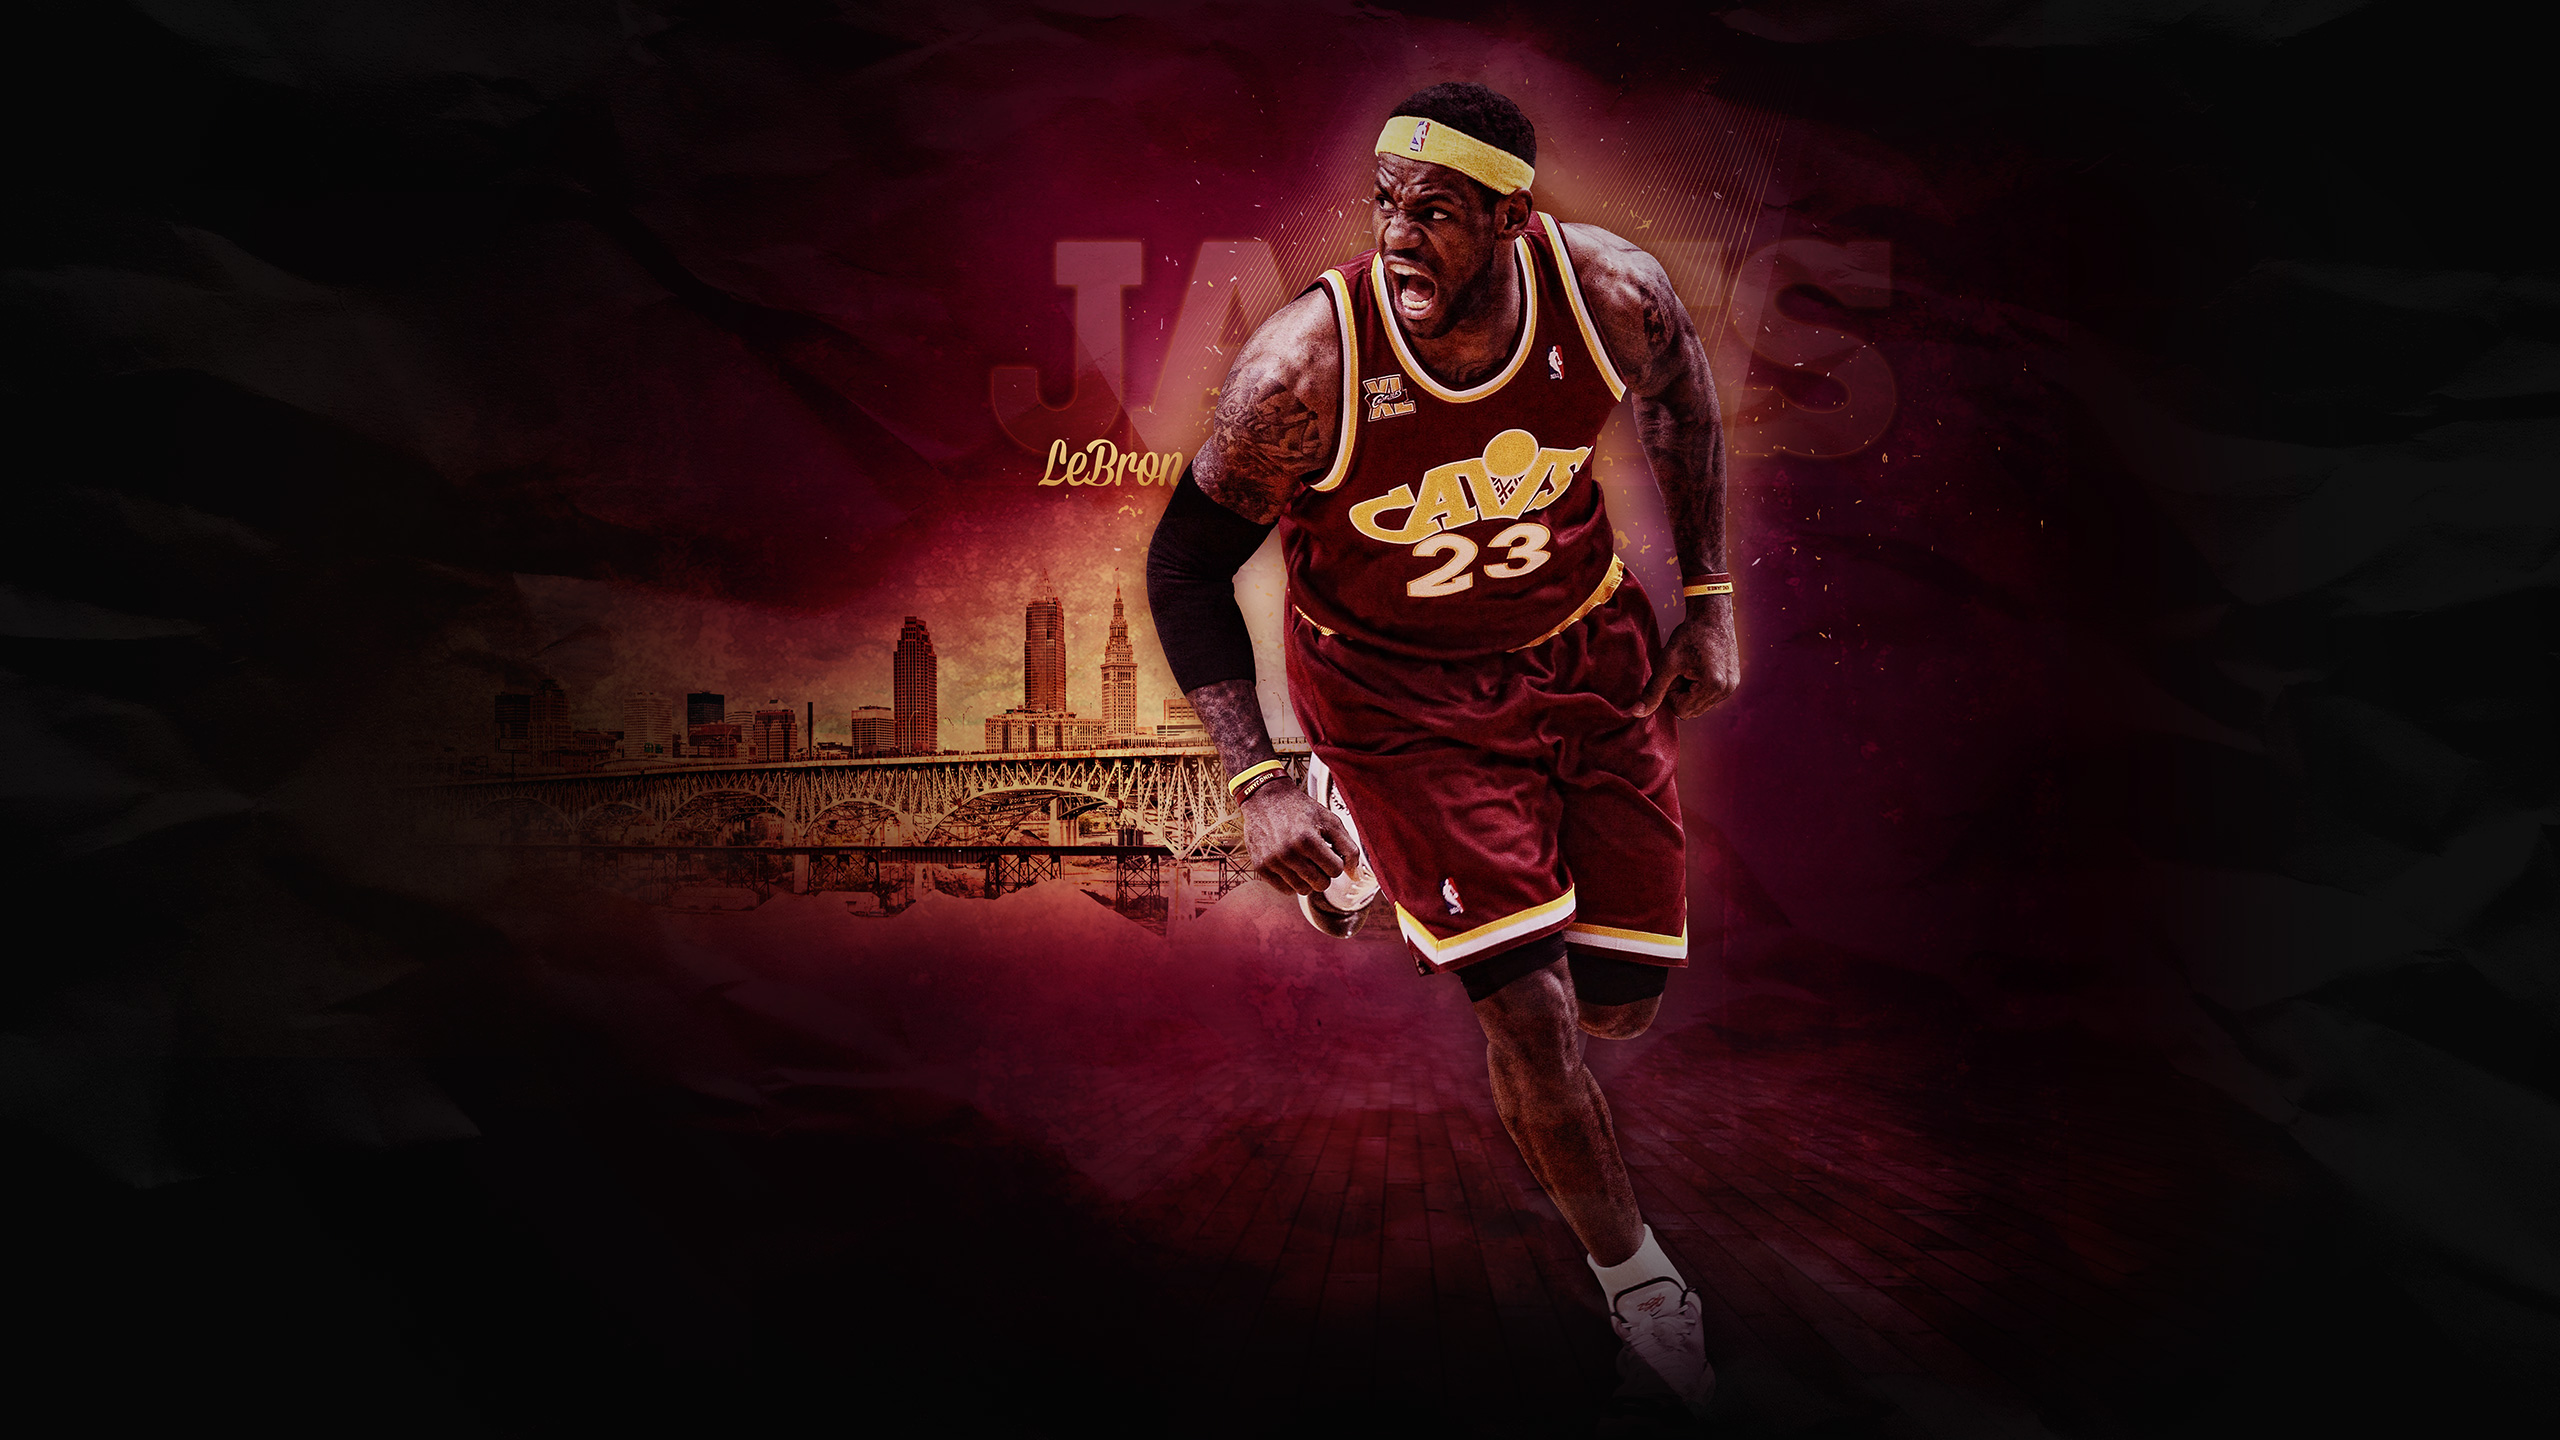 LeBron James HD wallpaper